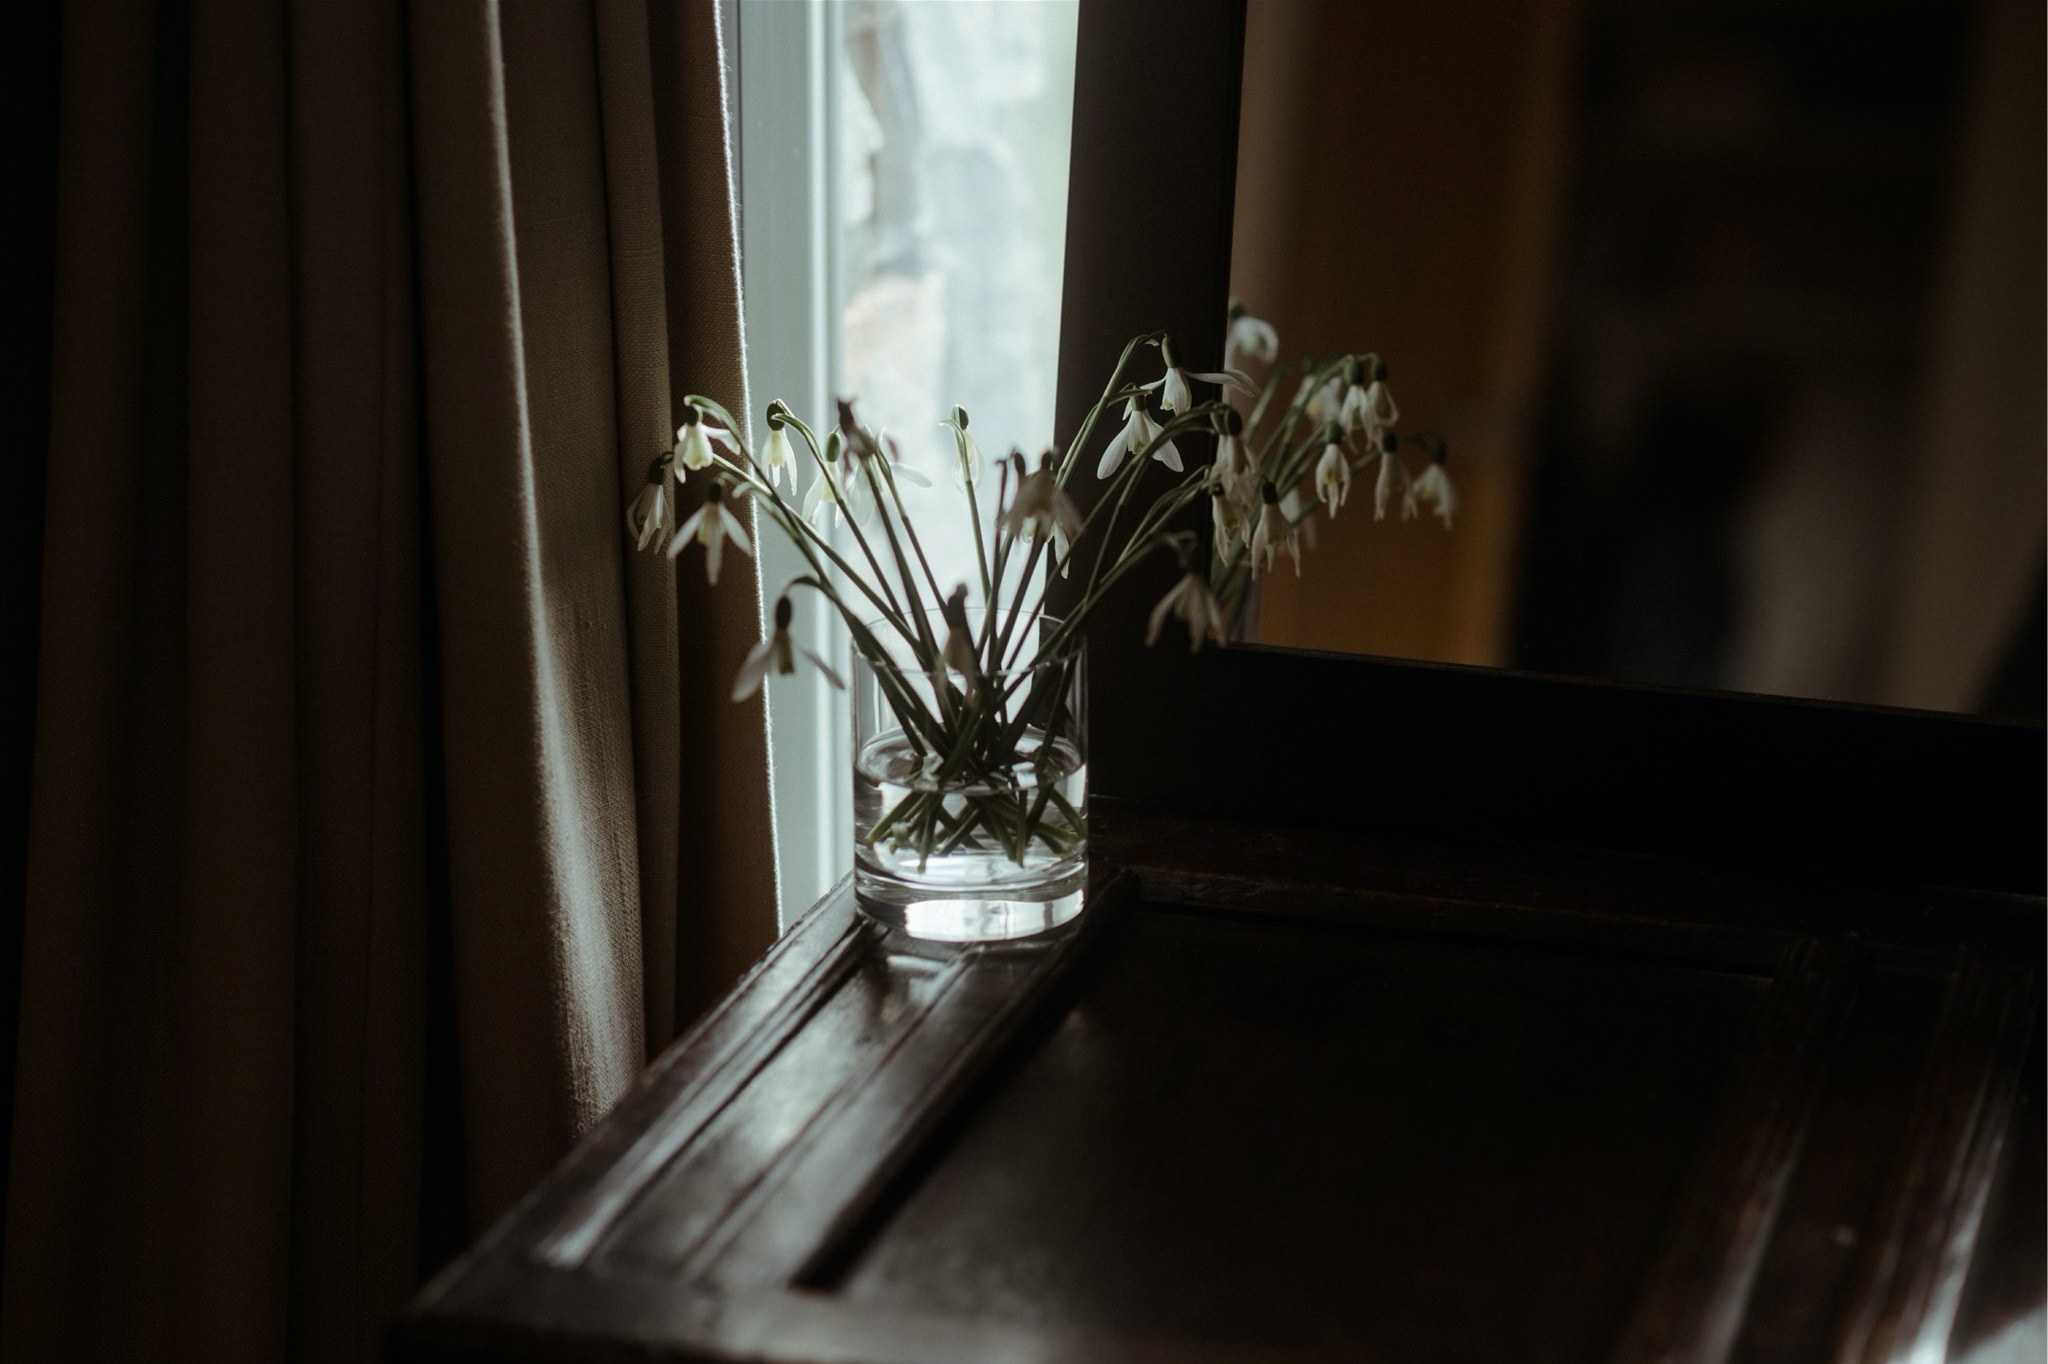 Snowdrops in a glass on a dresser